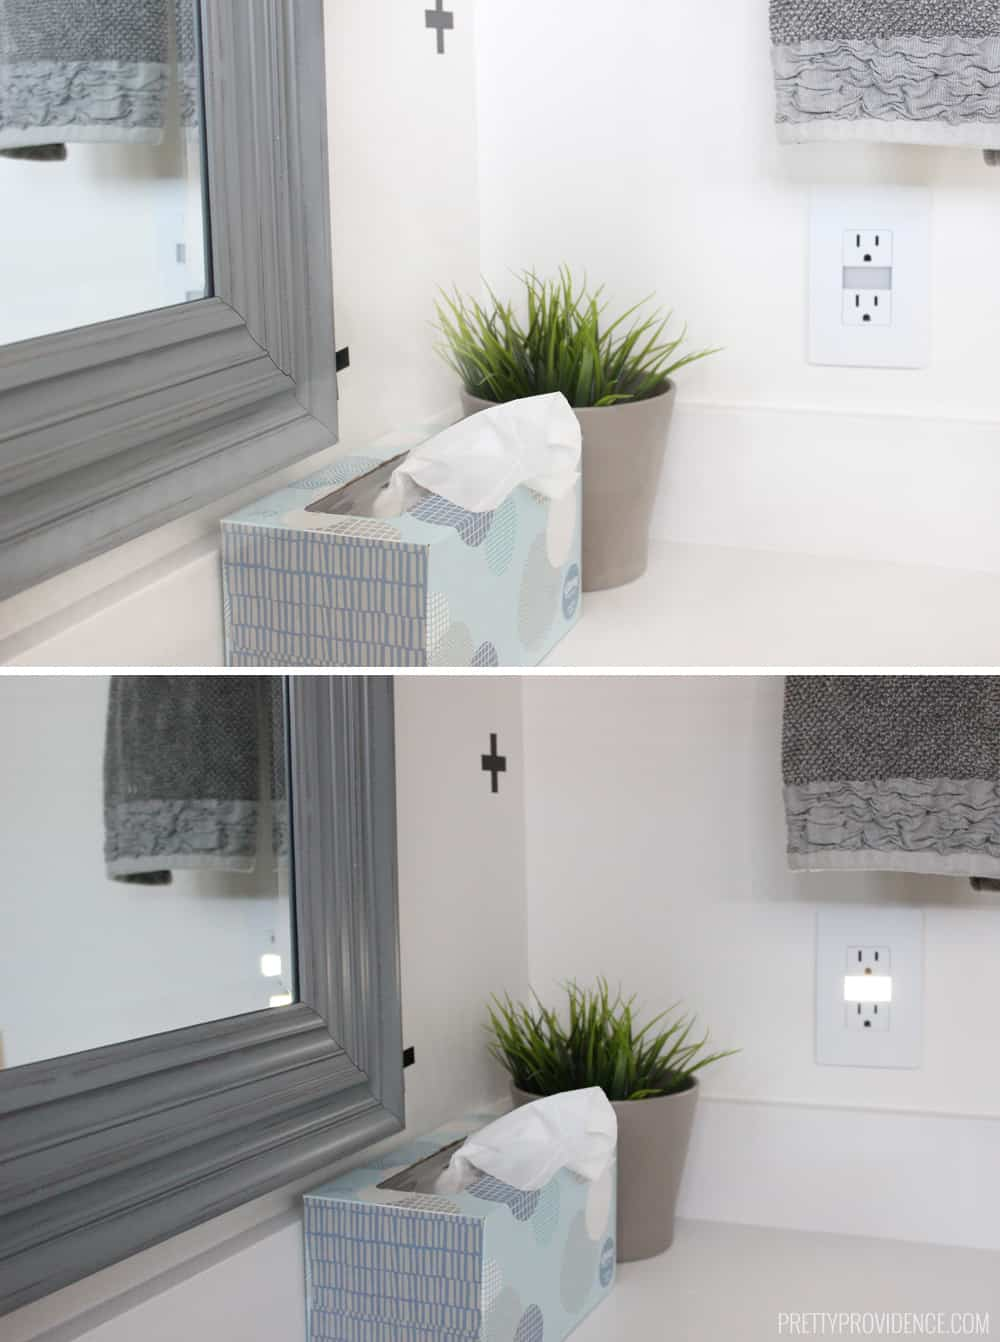 Three electrical outlets that will change your life! These will save you money, time, and they look beautiful to boot! Definite win/win.